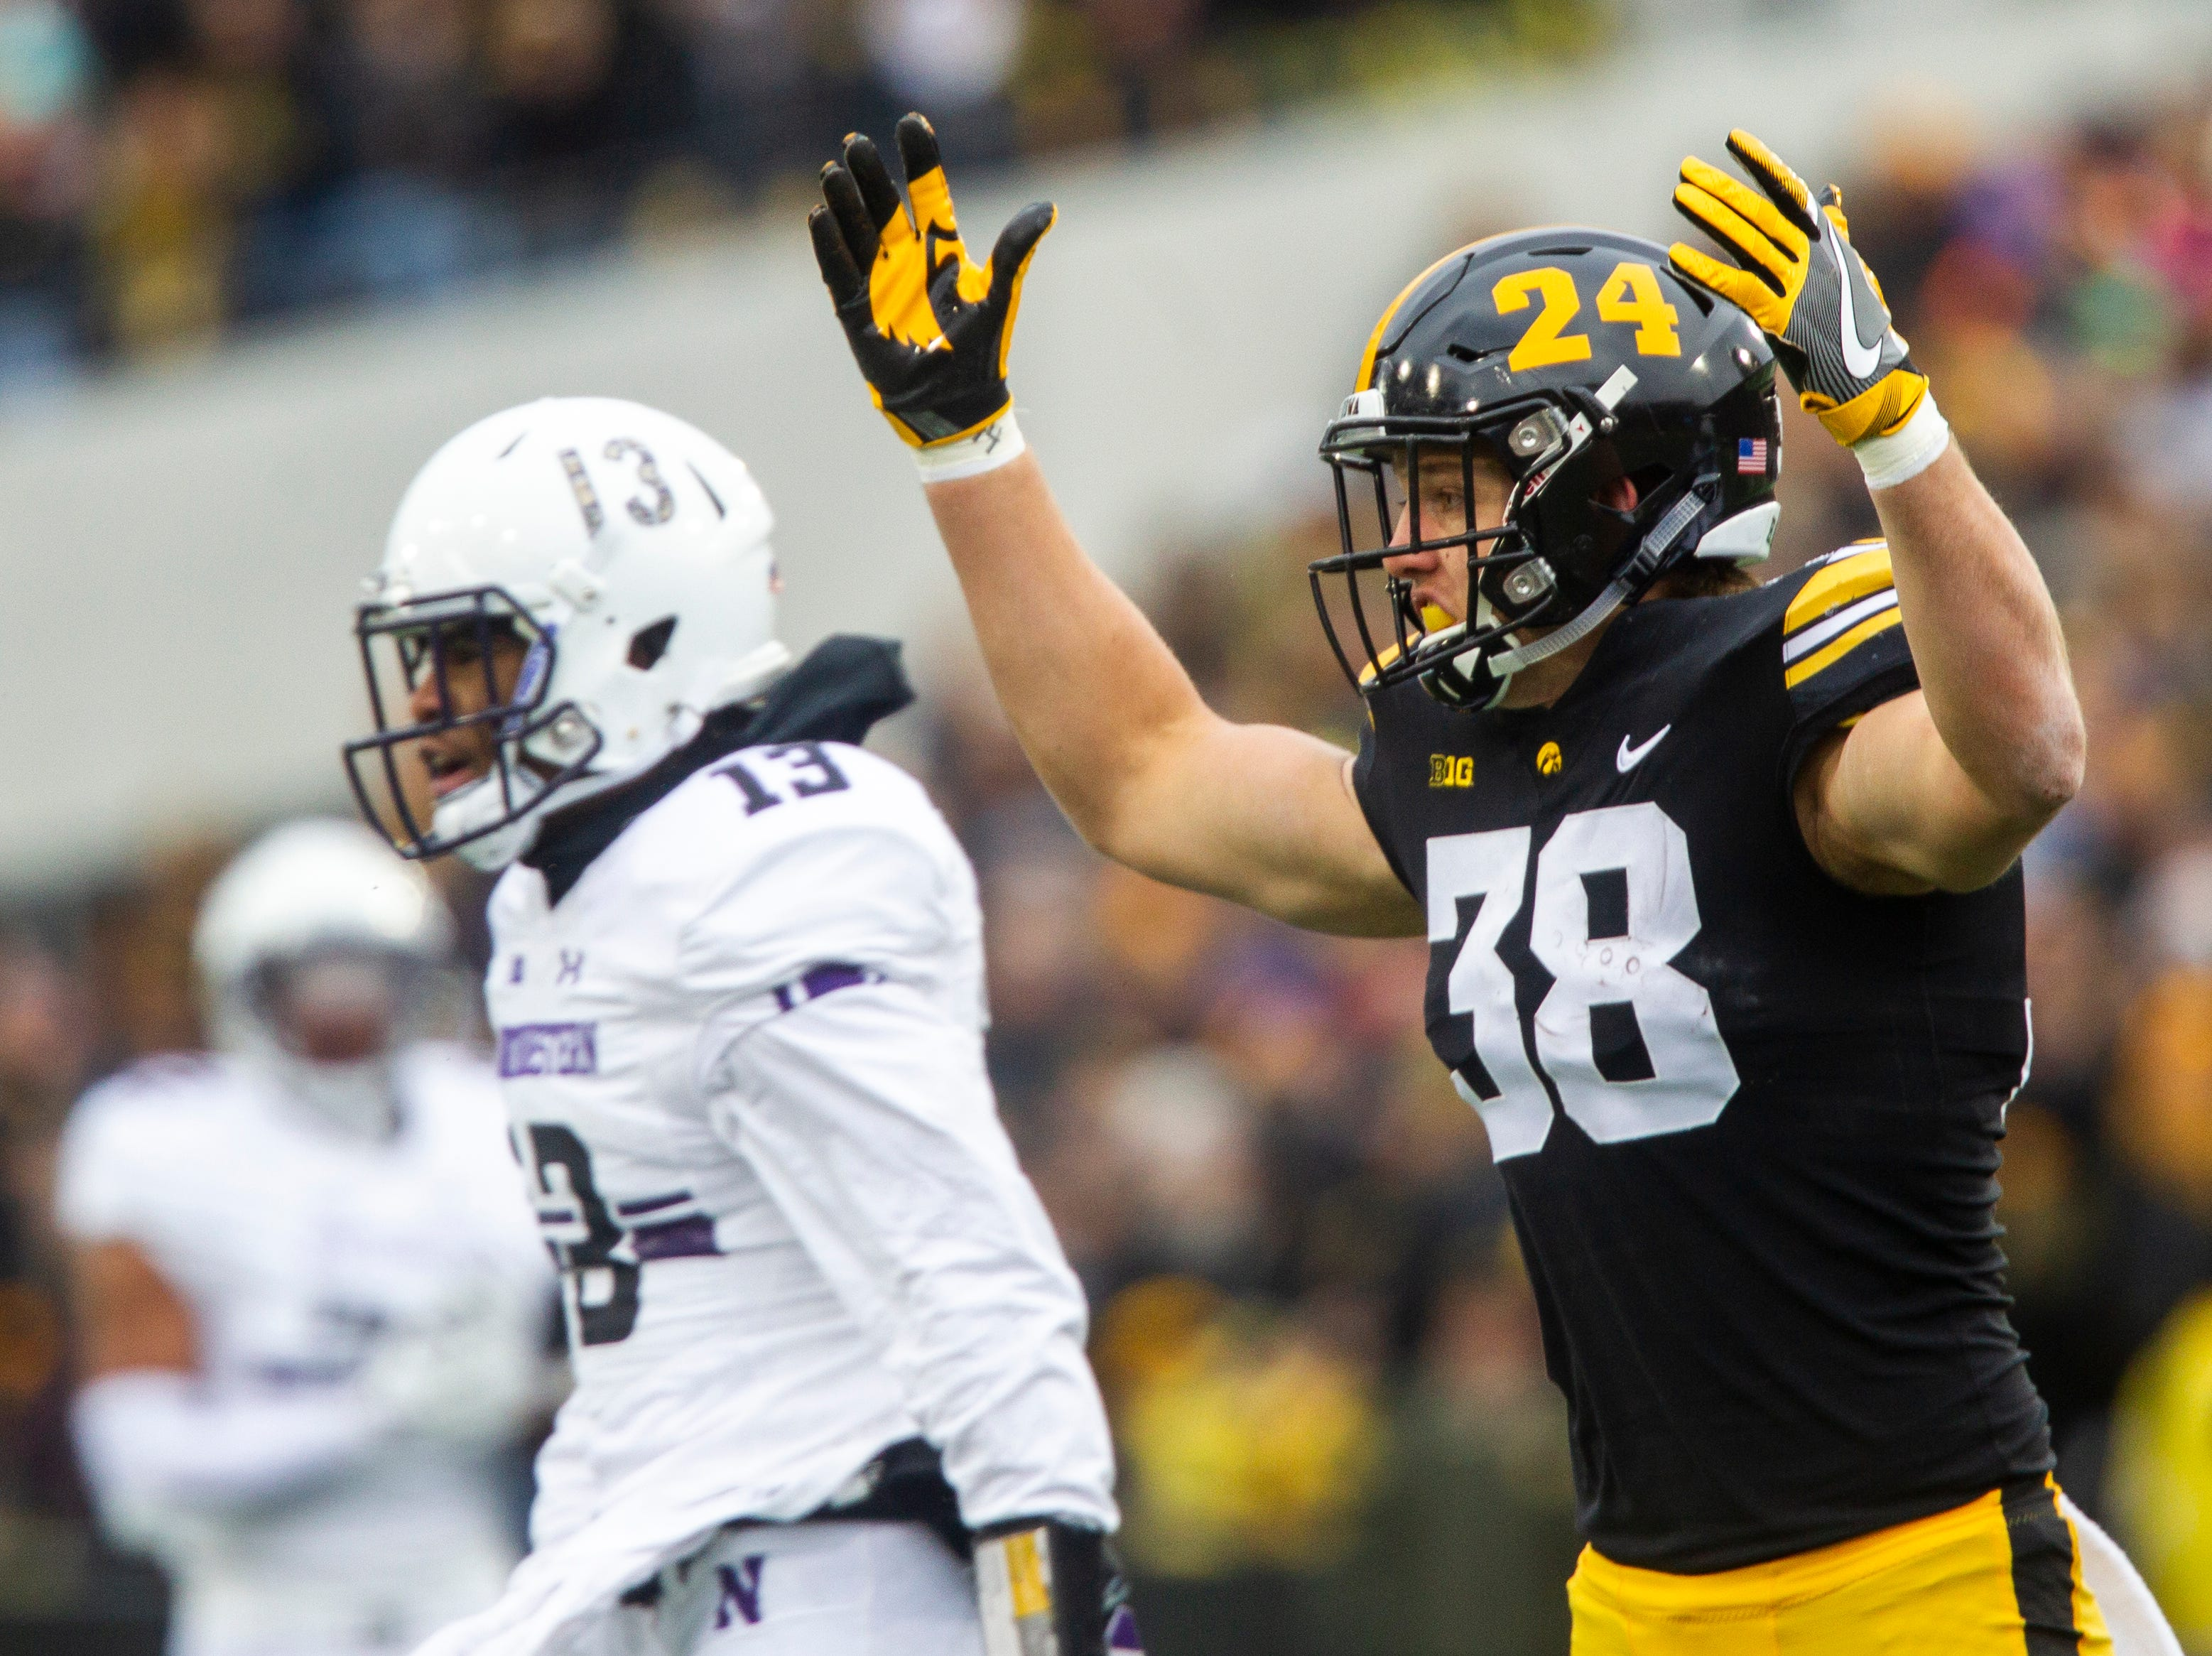 Iowa tight end T.J. Hockenson (38) reacts after a play during a Big Ten Conference football game on Saturday, Nov. 10, 2018, at Kinnick Stadium in Iowa City.